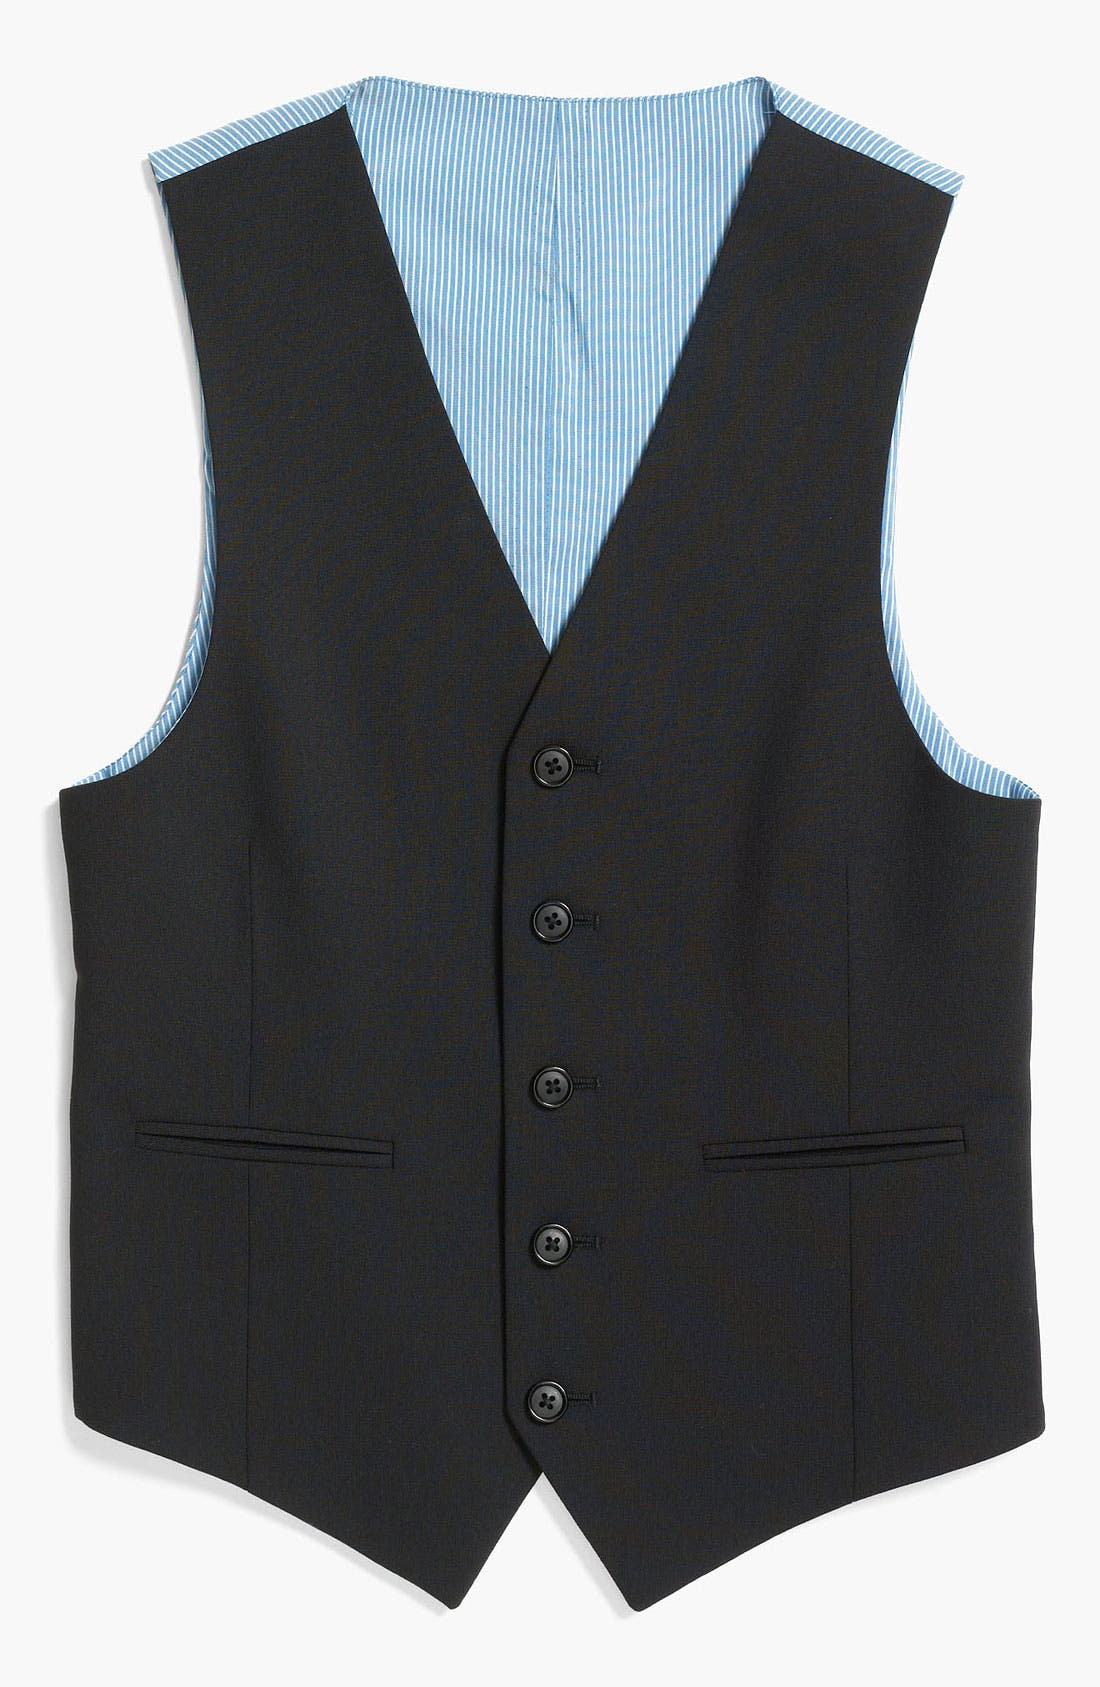 Alternate Image 1 Selected - Joseph Abboud Vest (Big Boys)